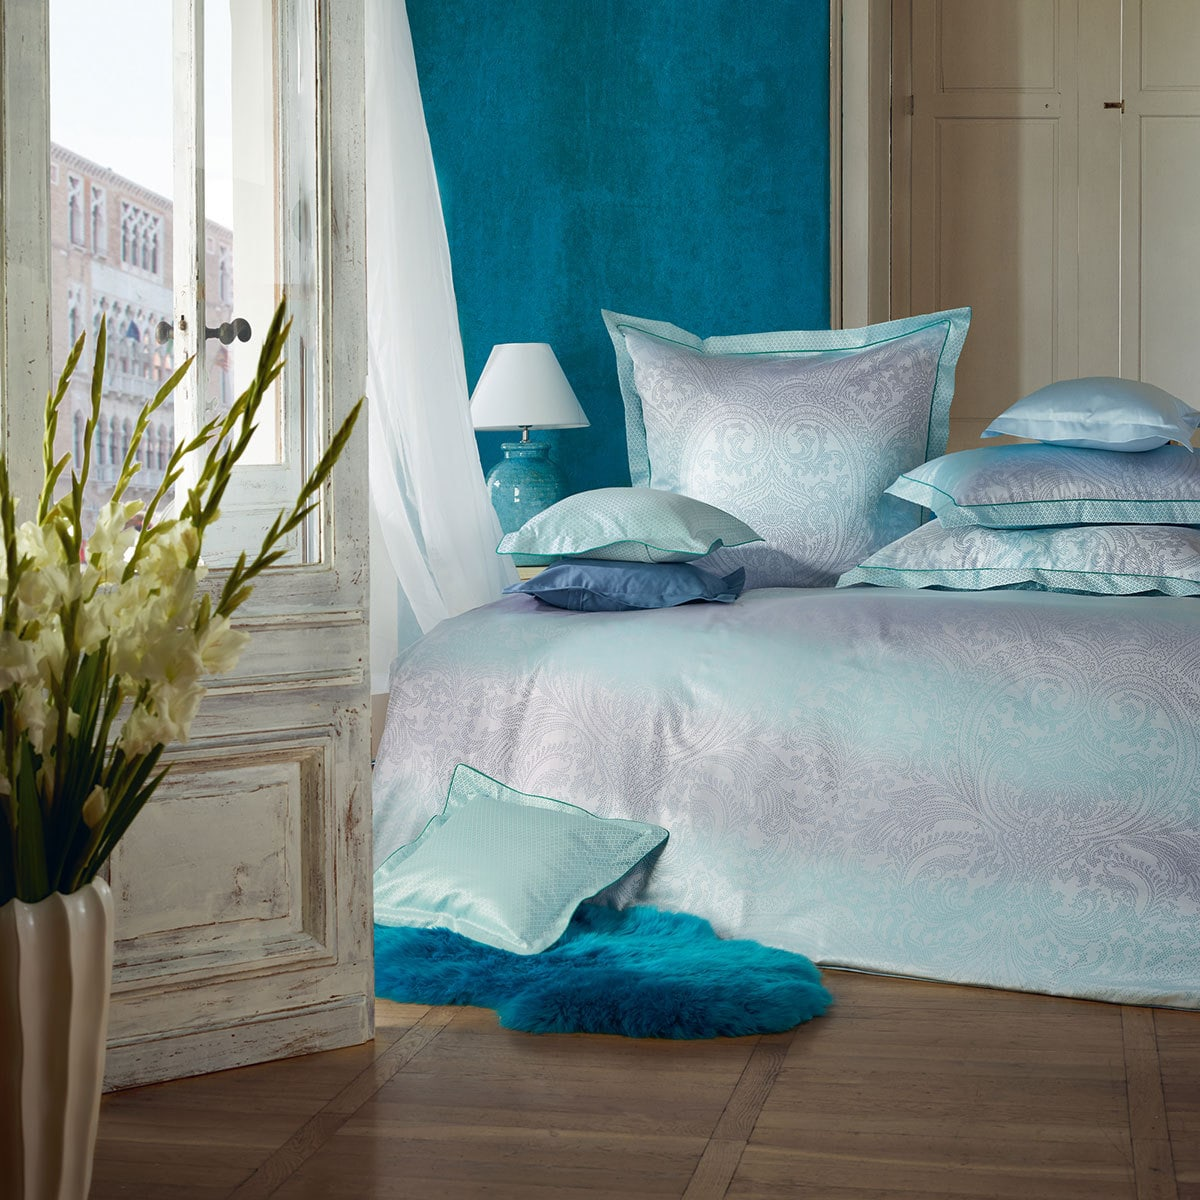 curt bauer mako brokat damast wendebettw sche aurora t rkis blau g nstig online kaufen bei. Black Bedroom Furniture Sets. Home Design Ideas